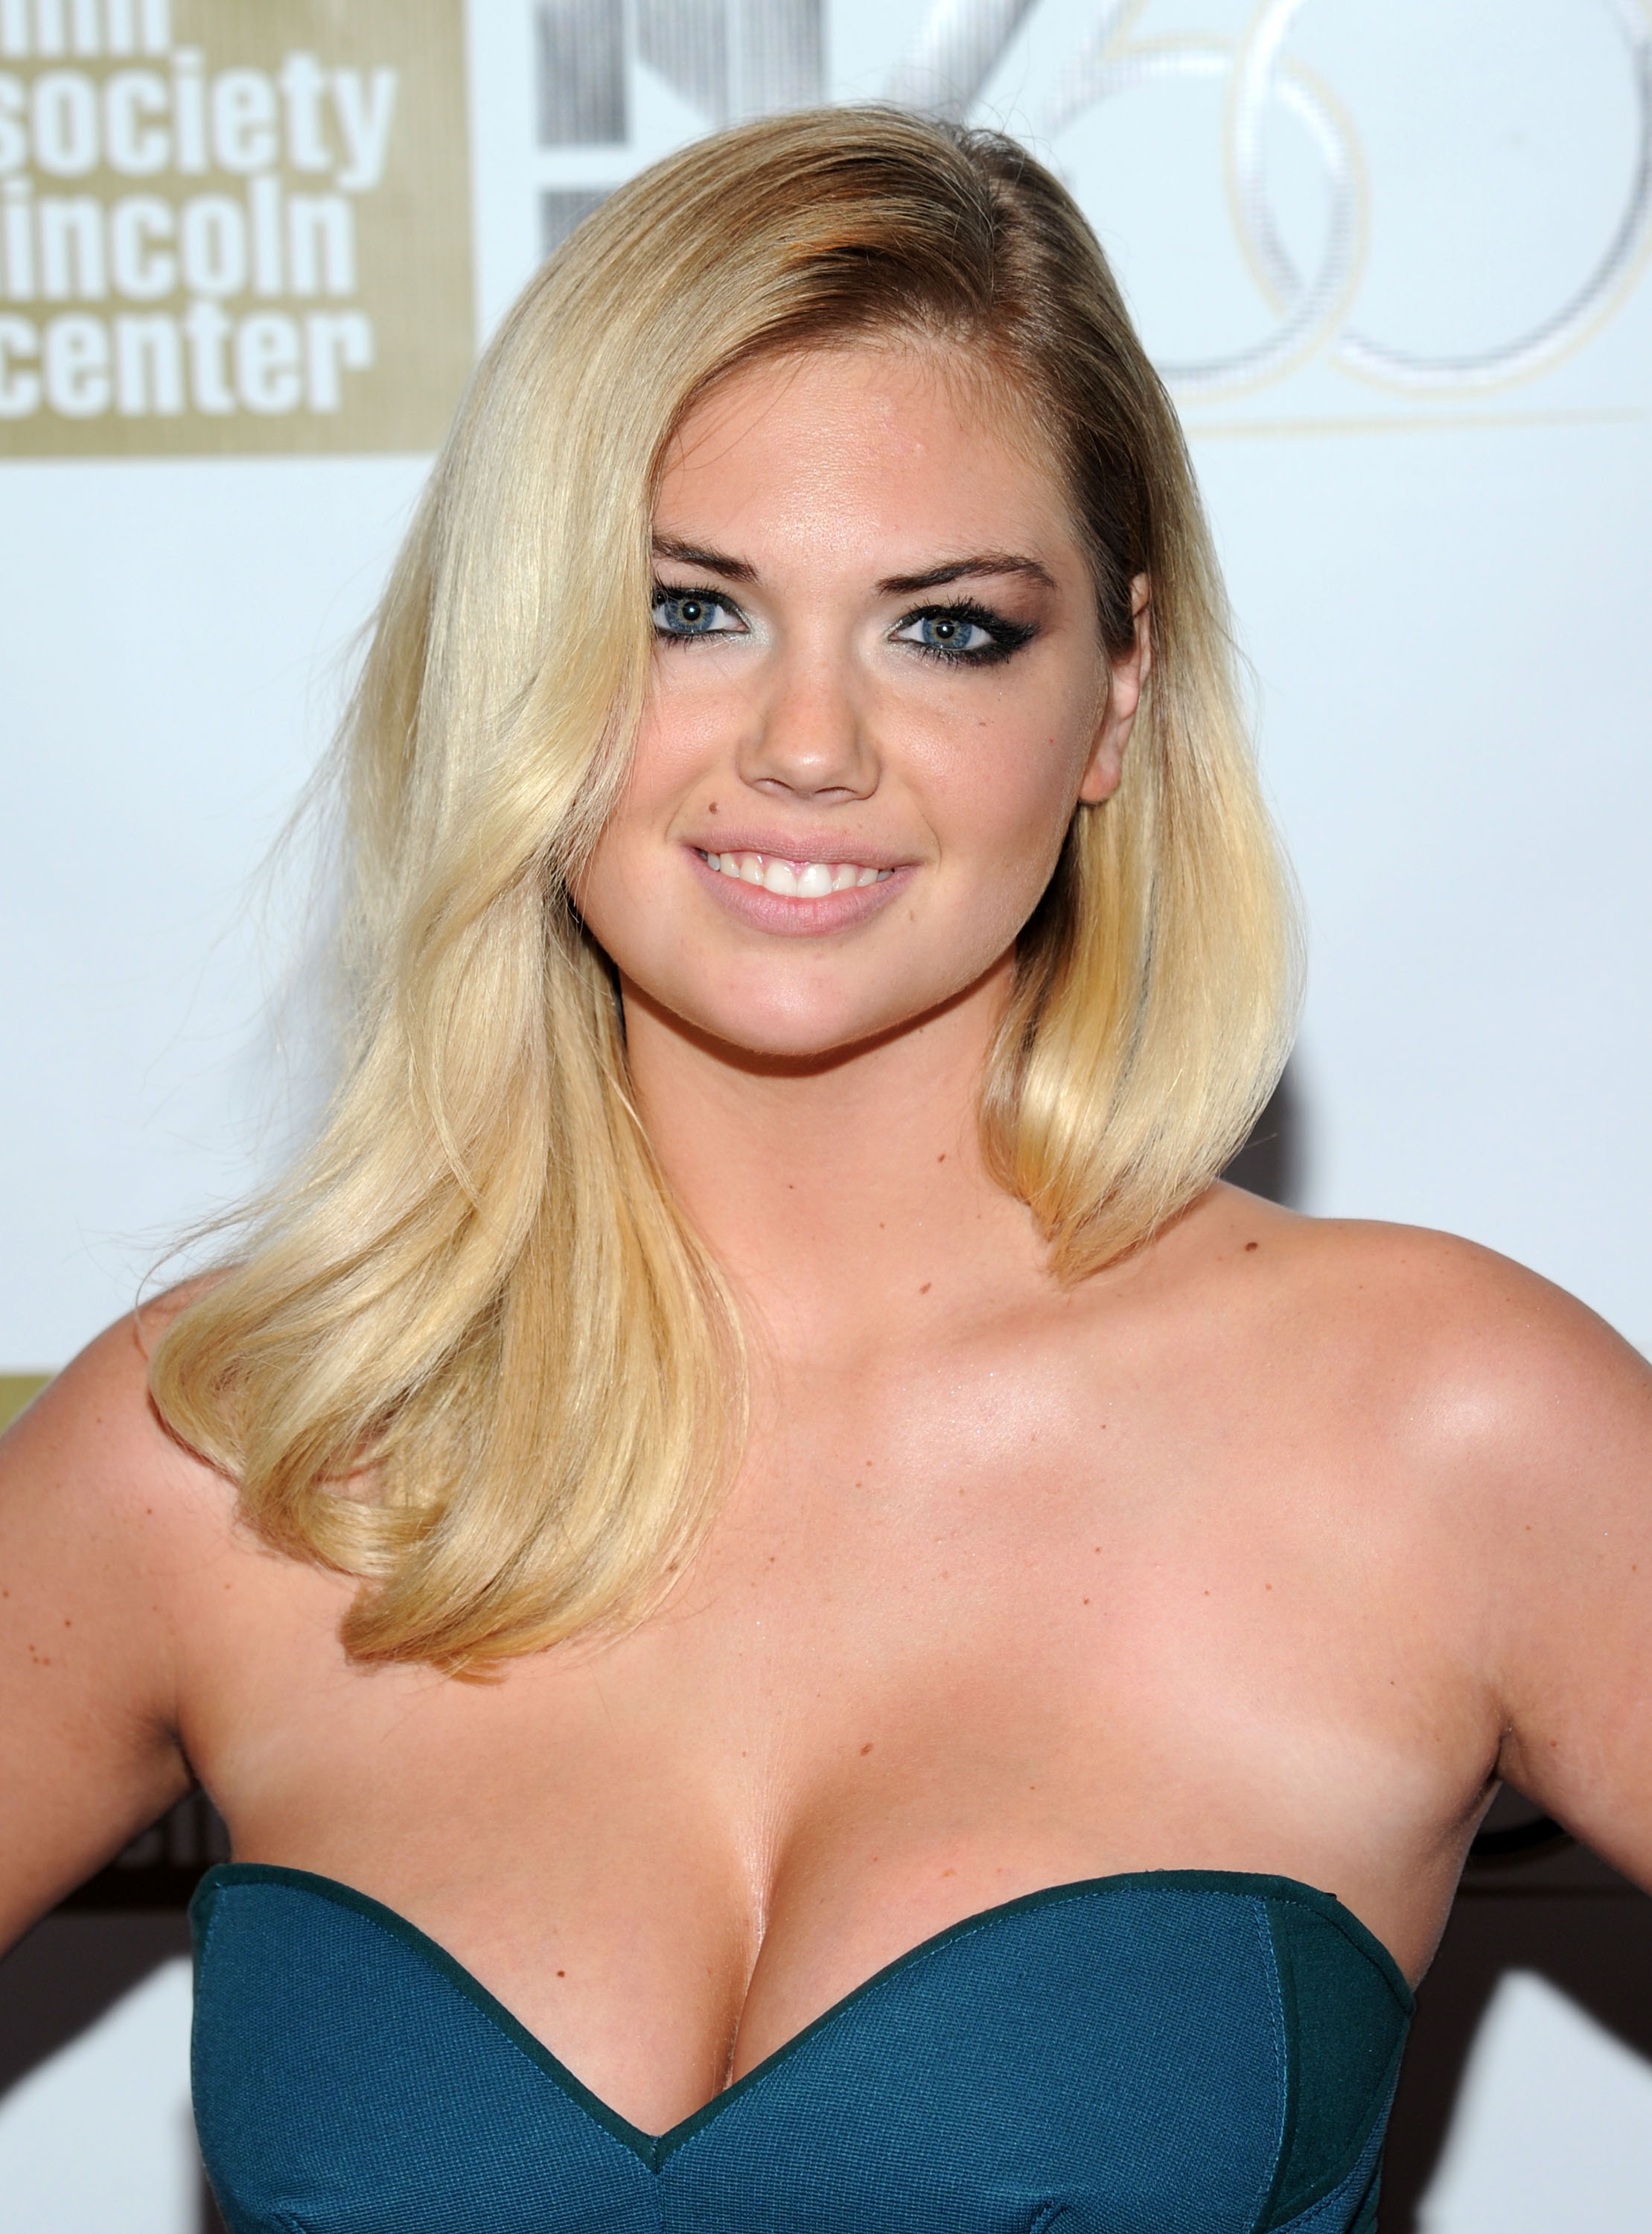 Kate Upton attends the 'No' Premiere During The 50th New York Film Festival at Alice Tully Hall on October 12, 2012 in New York City.